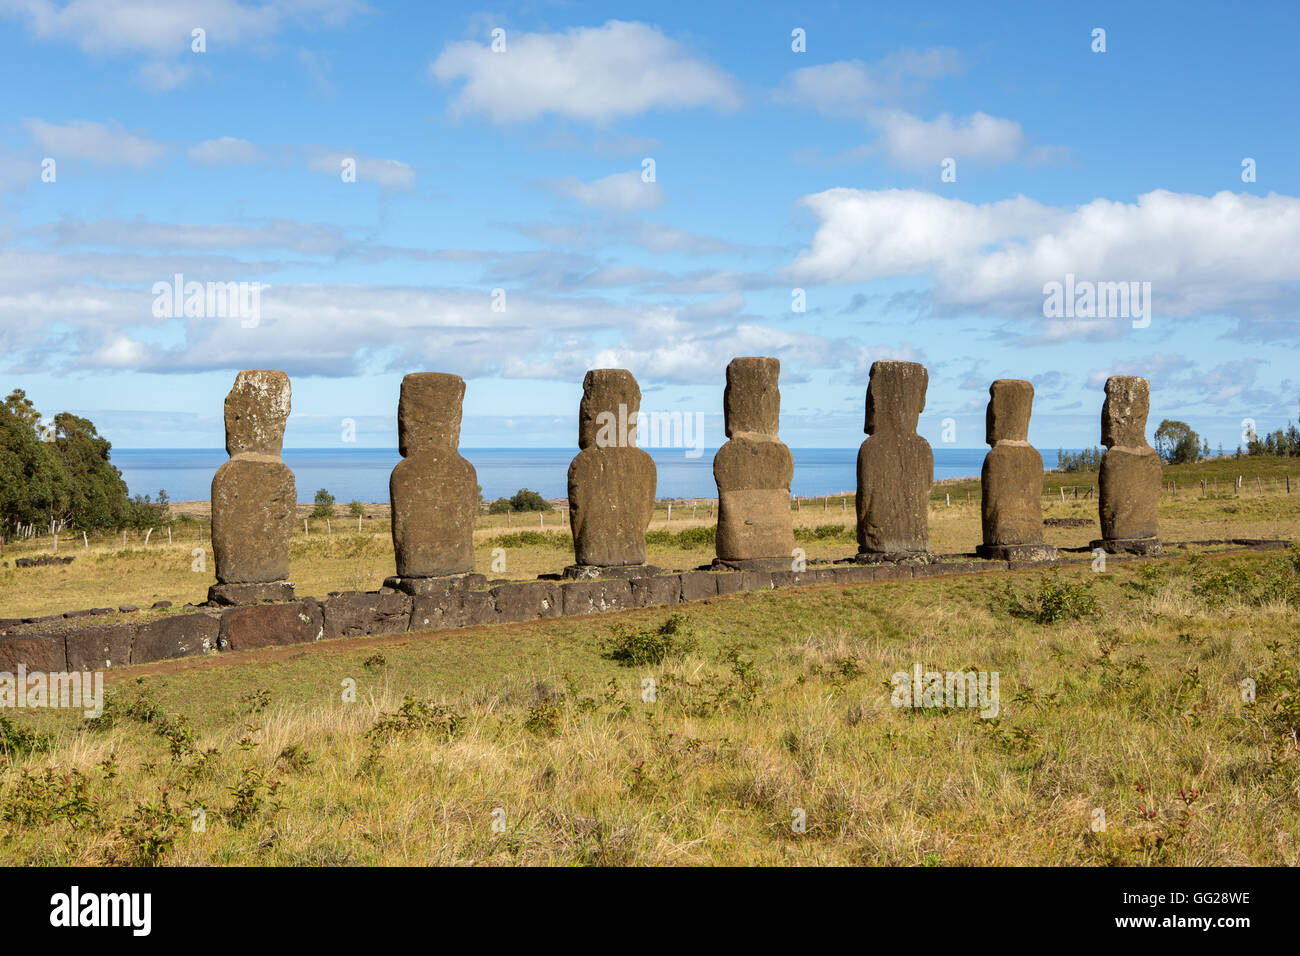 Statues on Easter Island - Stock Image